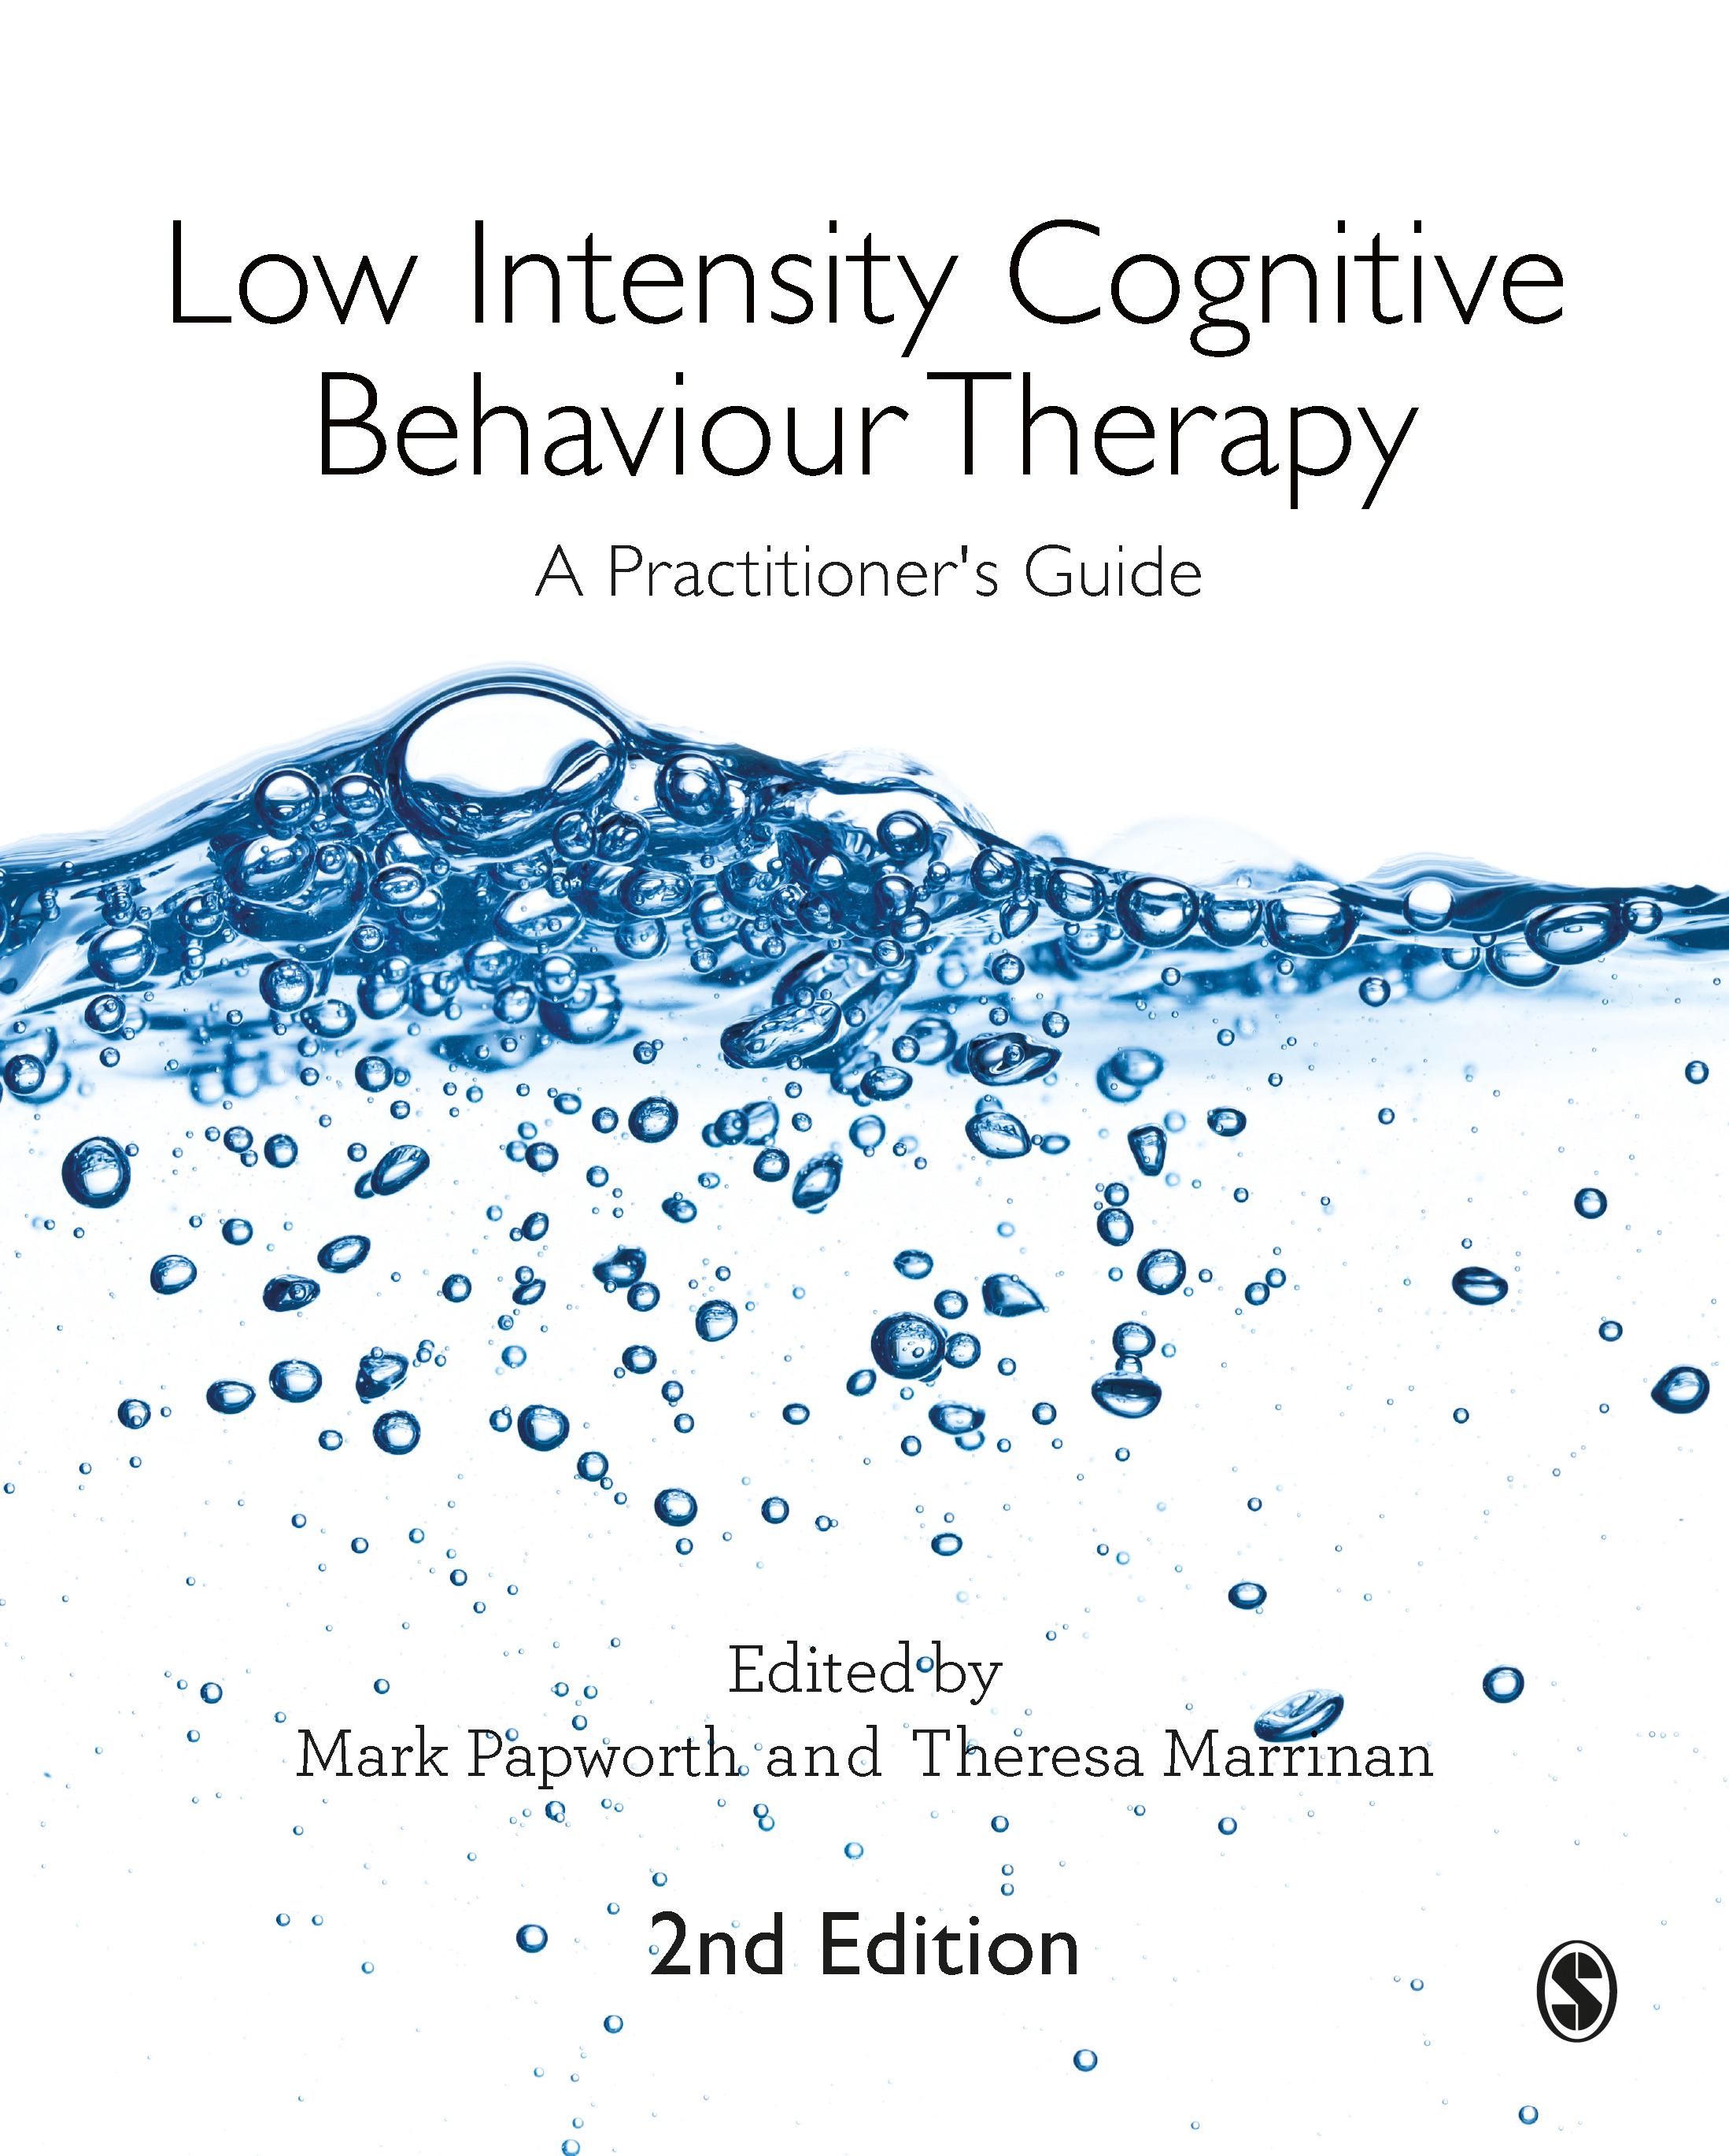 Low Intensity Cognitive Behaviour Therapy: A Practitioner's Guide